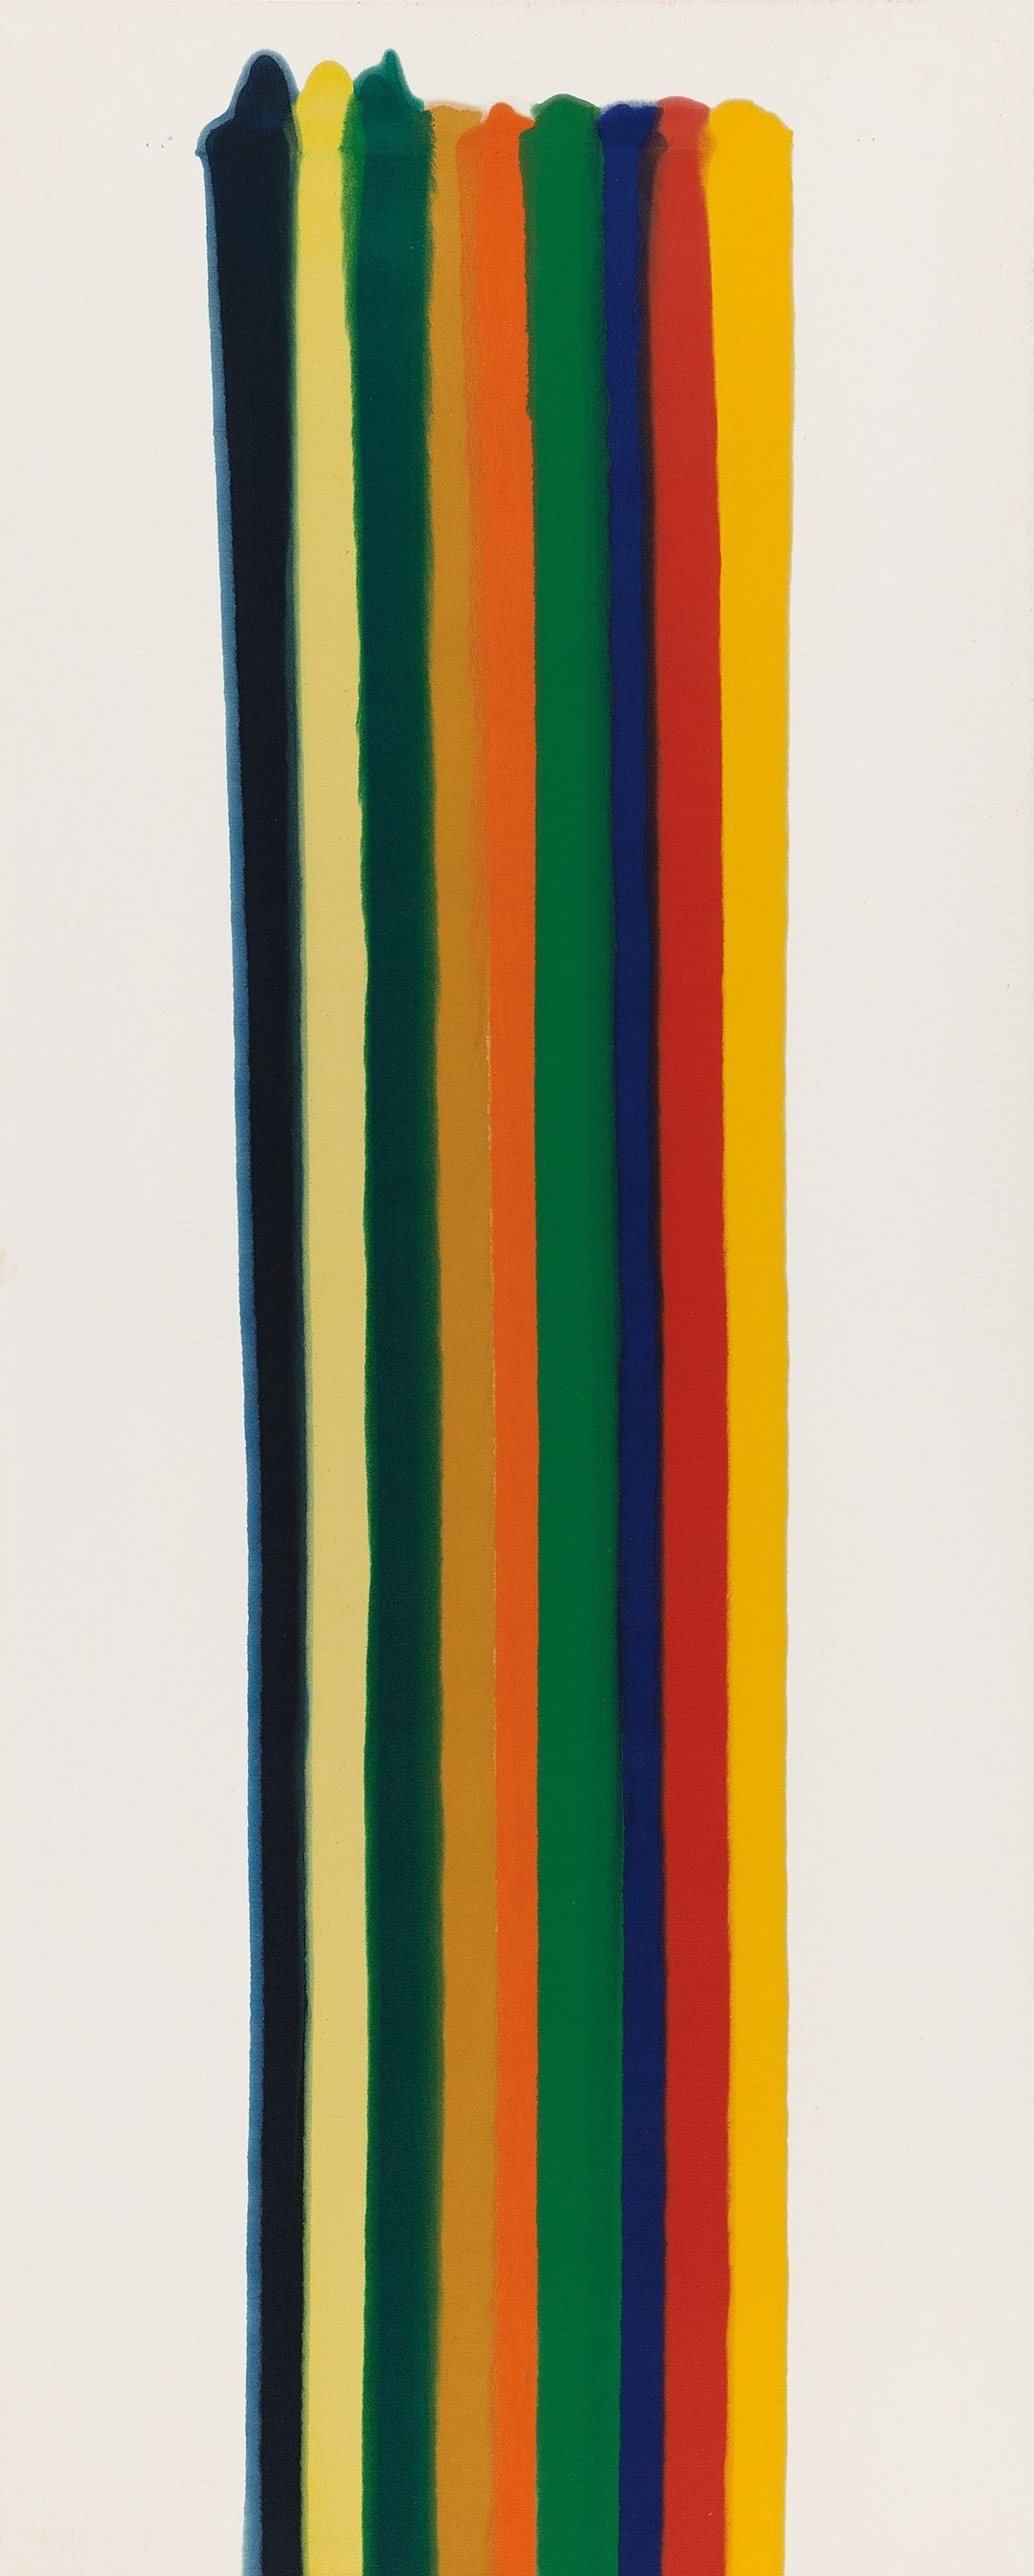 A print featuring stripes of various colors running vertically.